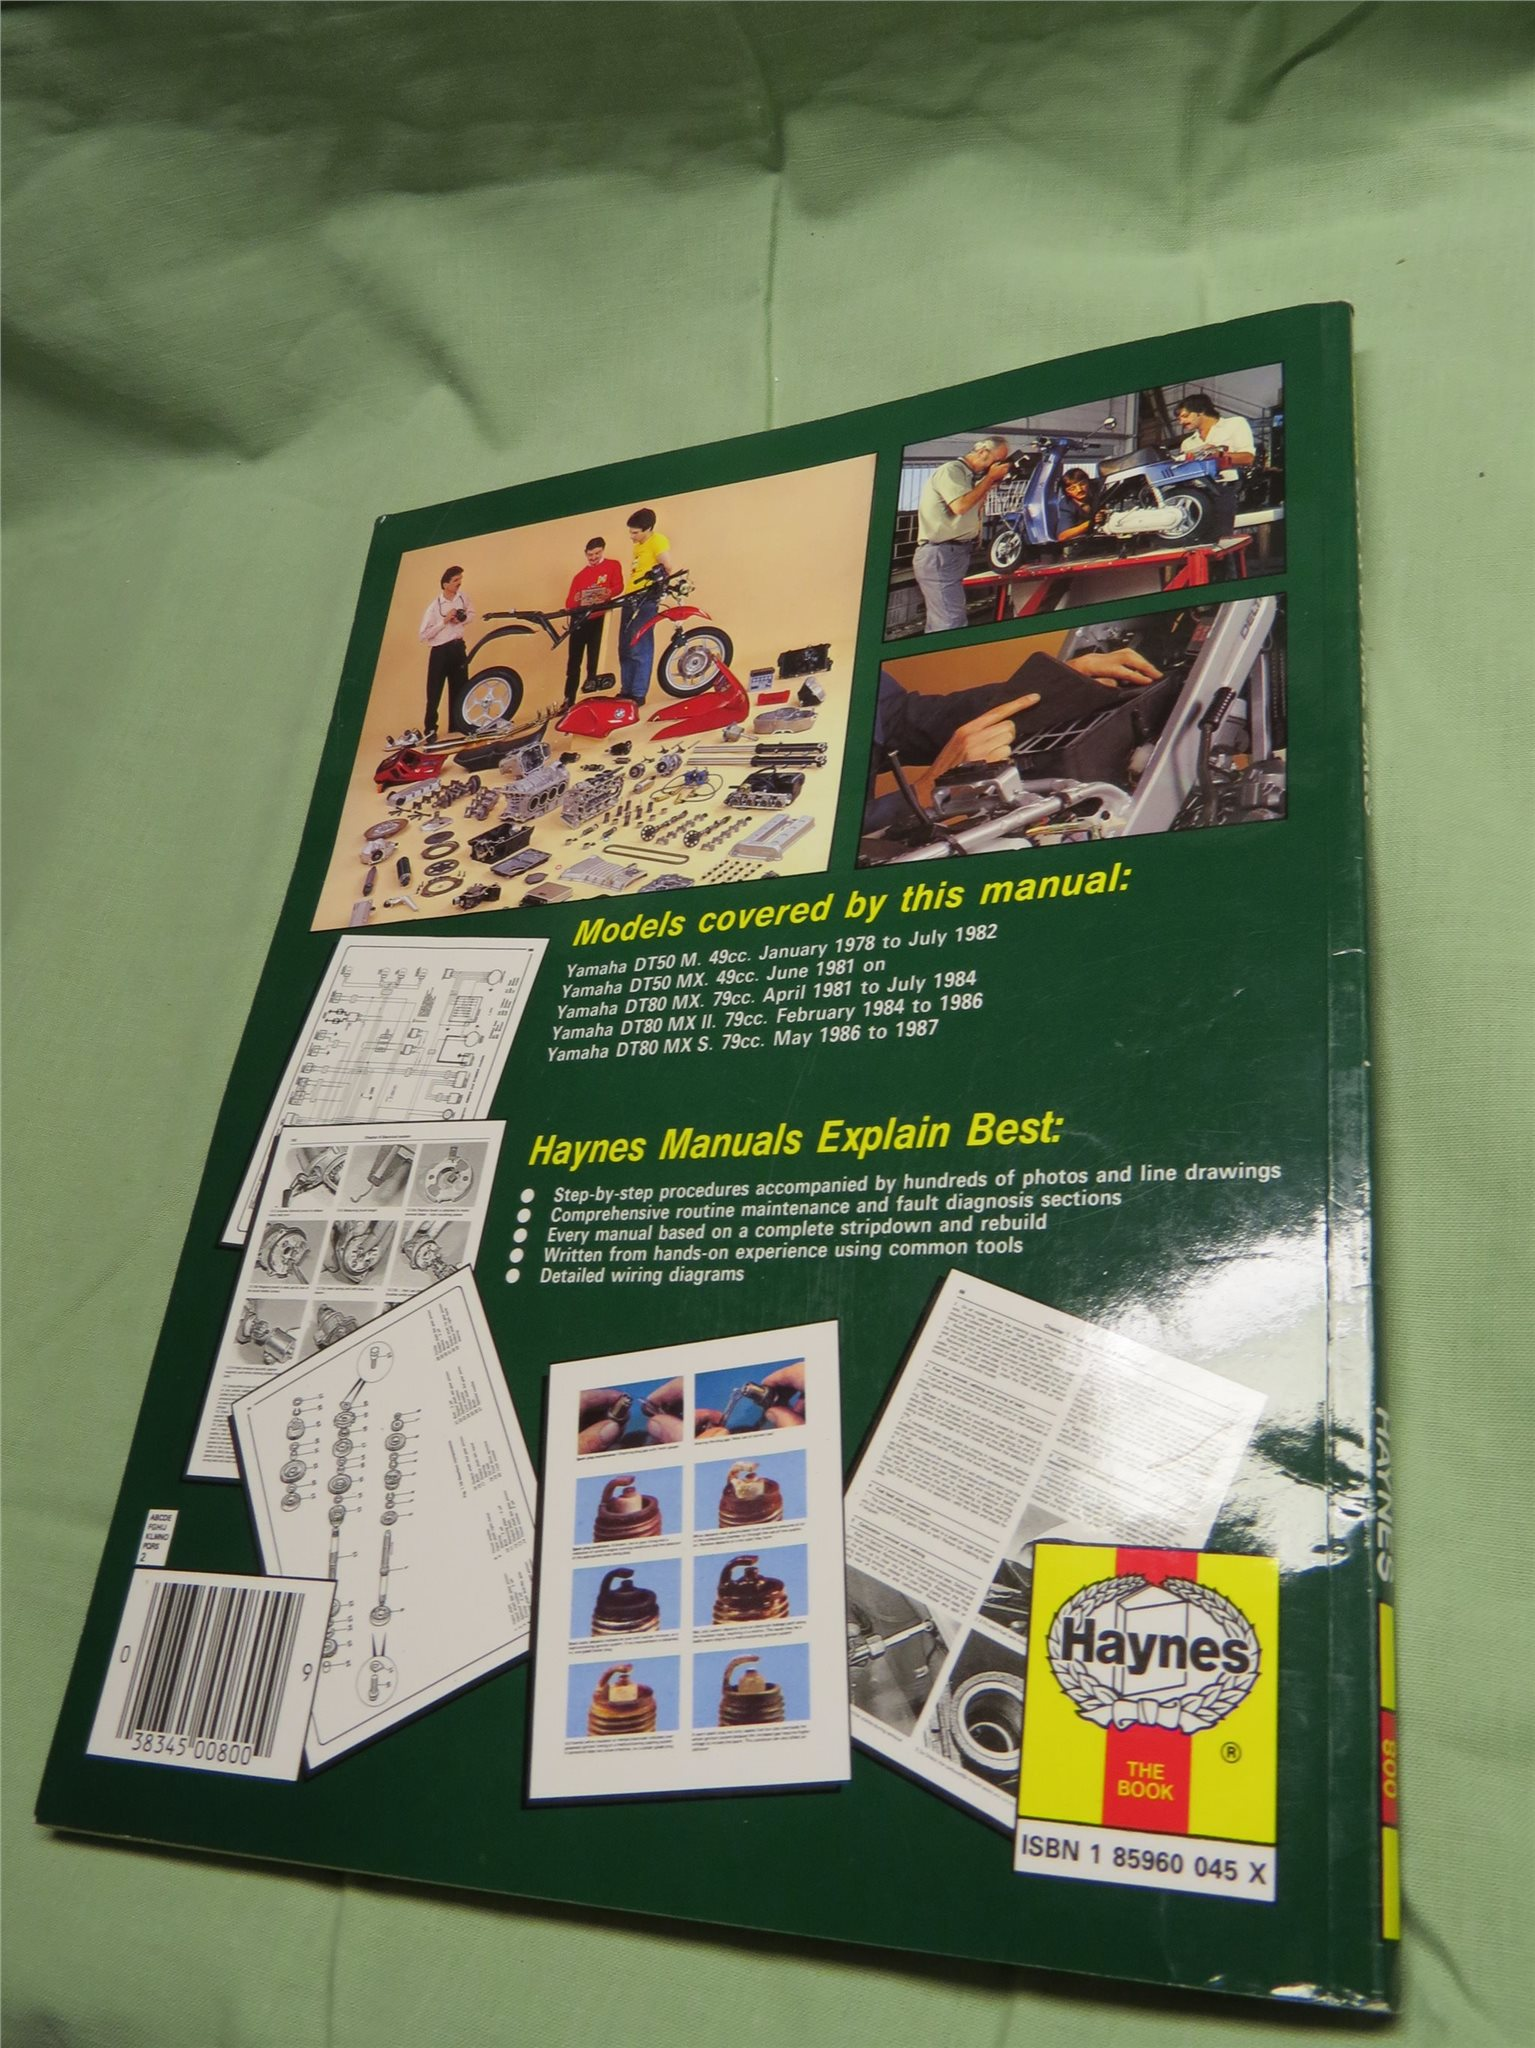 hight resolution of wiring diagram 1978 yamaha dt 125 service manual haynes manual yamaha dt 50